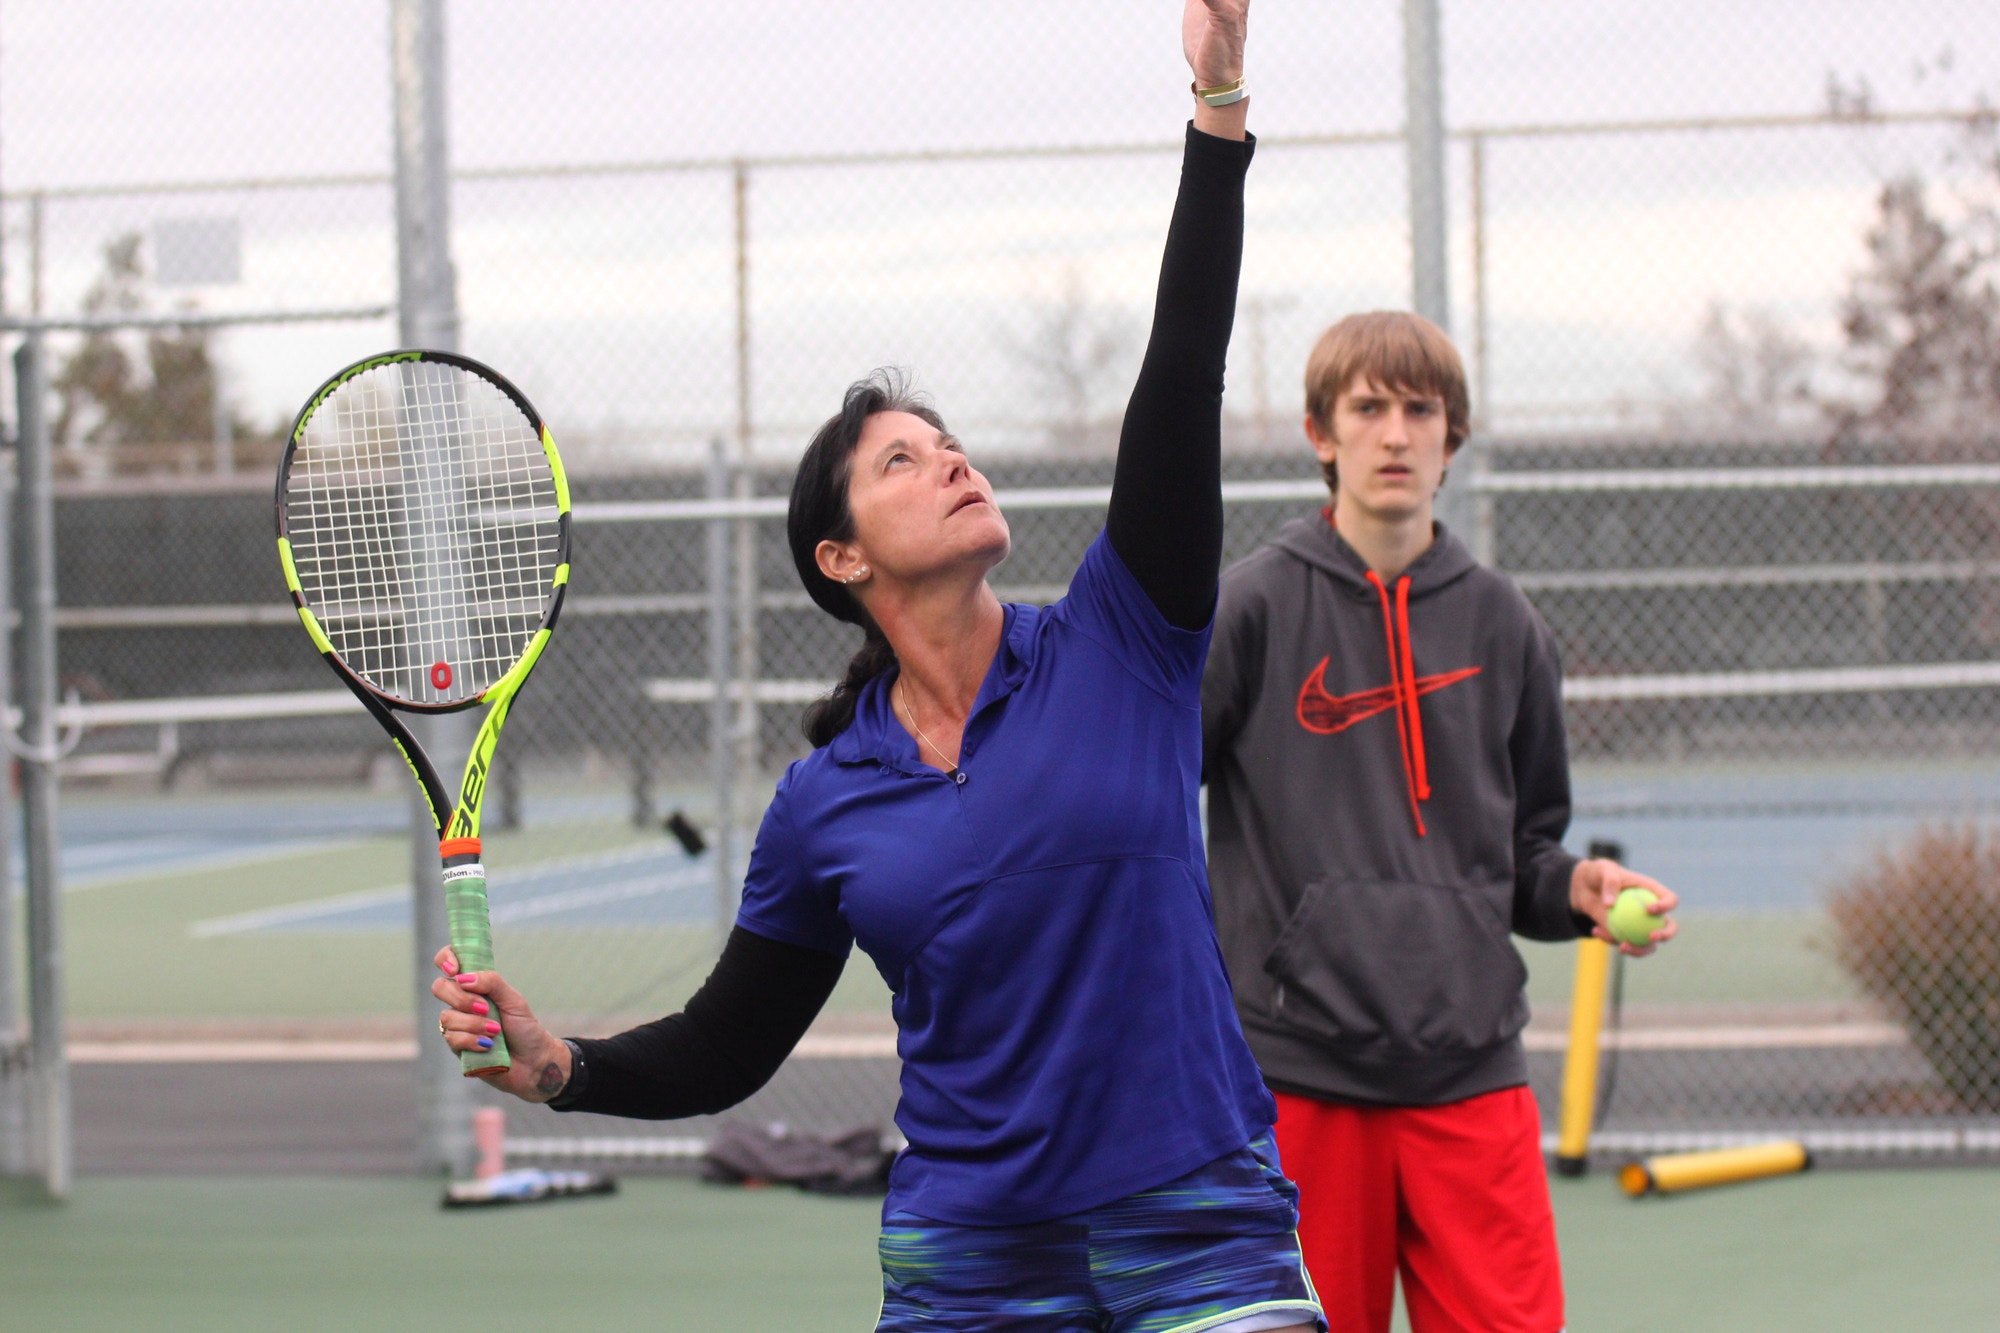 Vanessa B. teaches tennis lessons in Los Gatos, CA